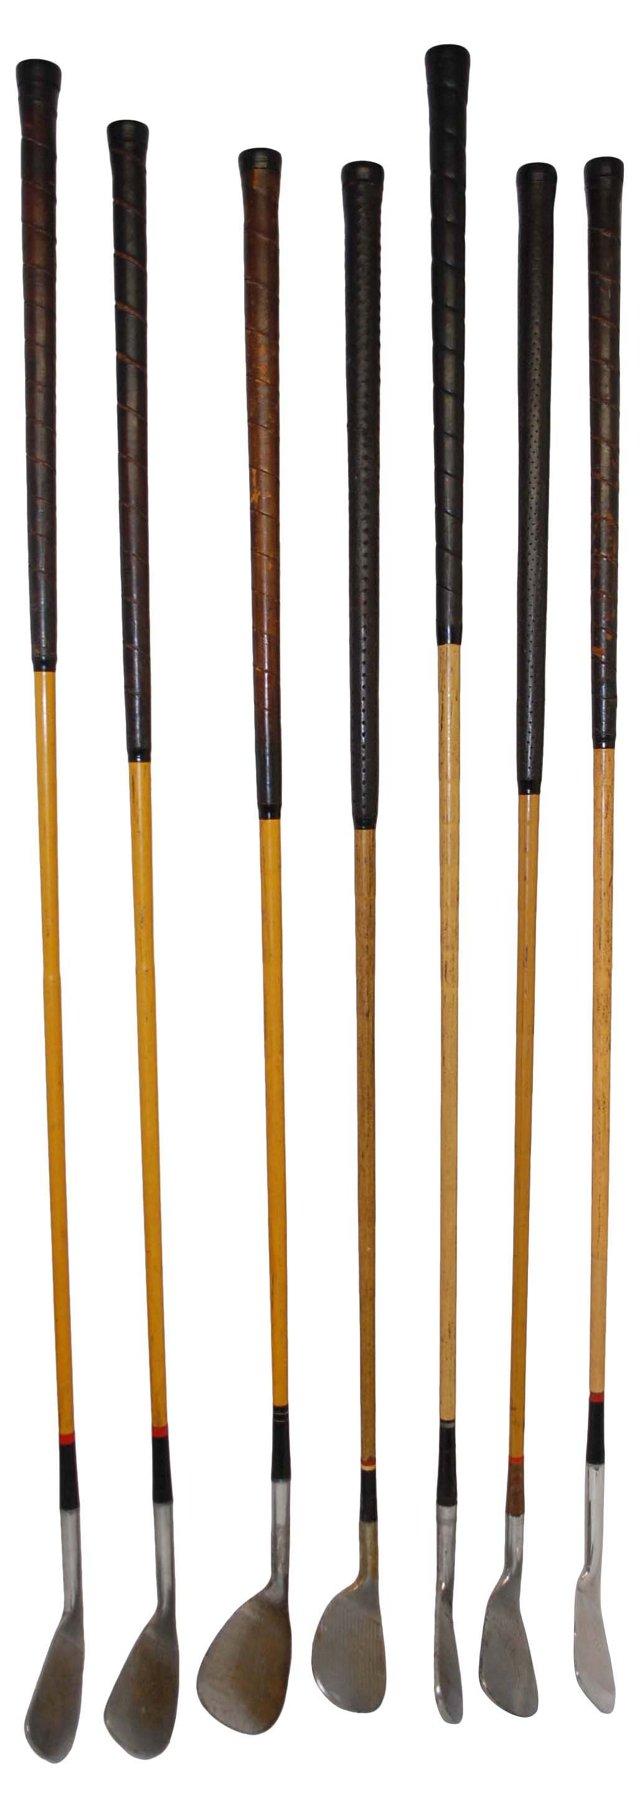 Antique Faux-Hickory Golf Clubs, S/7